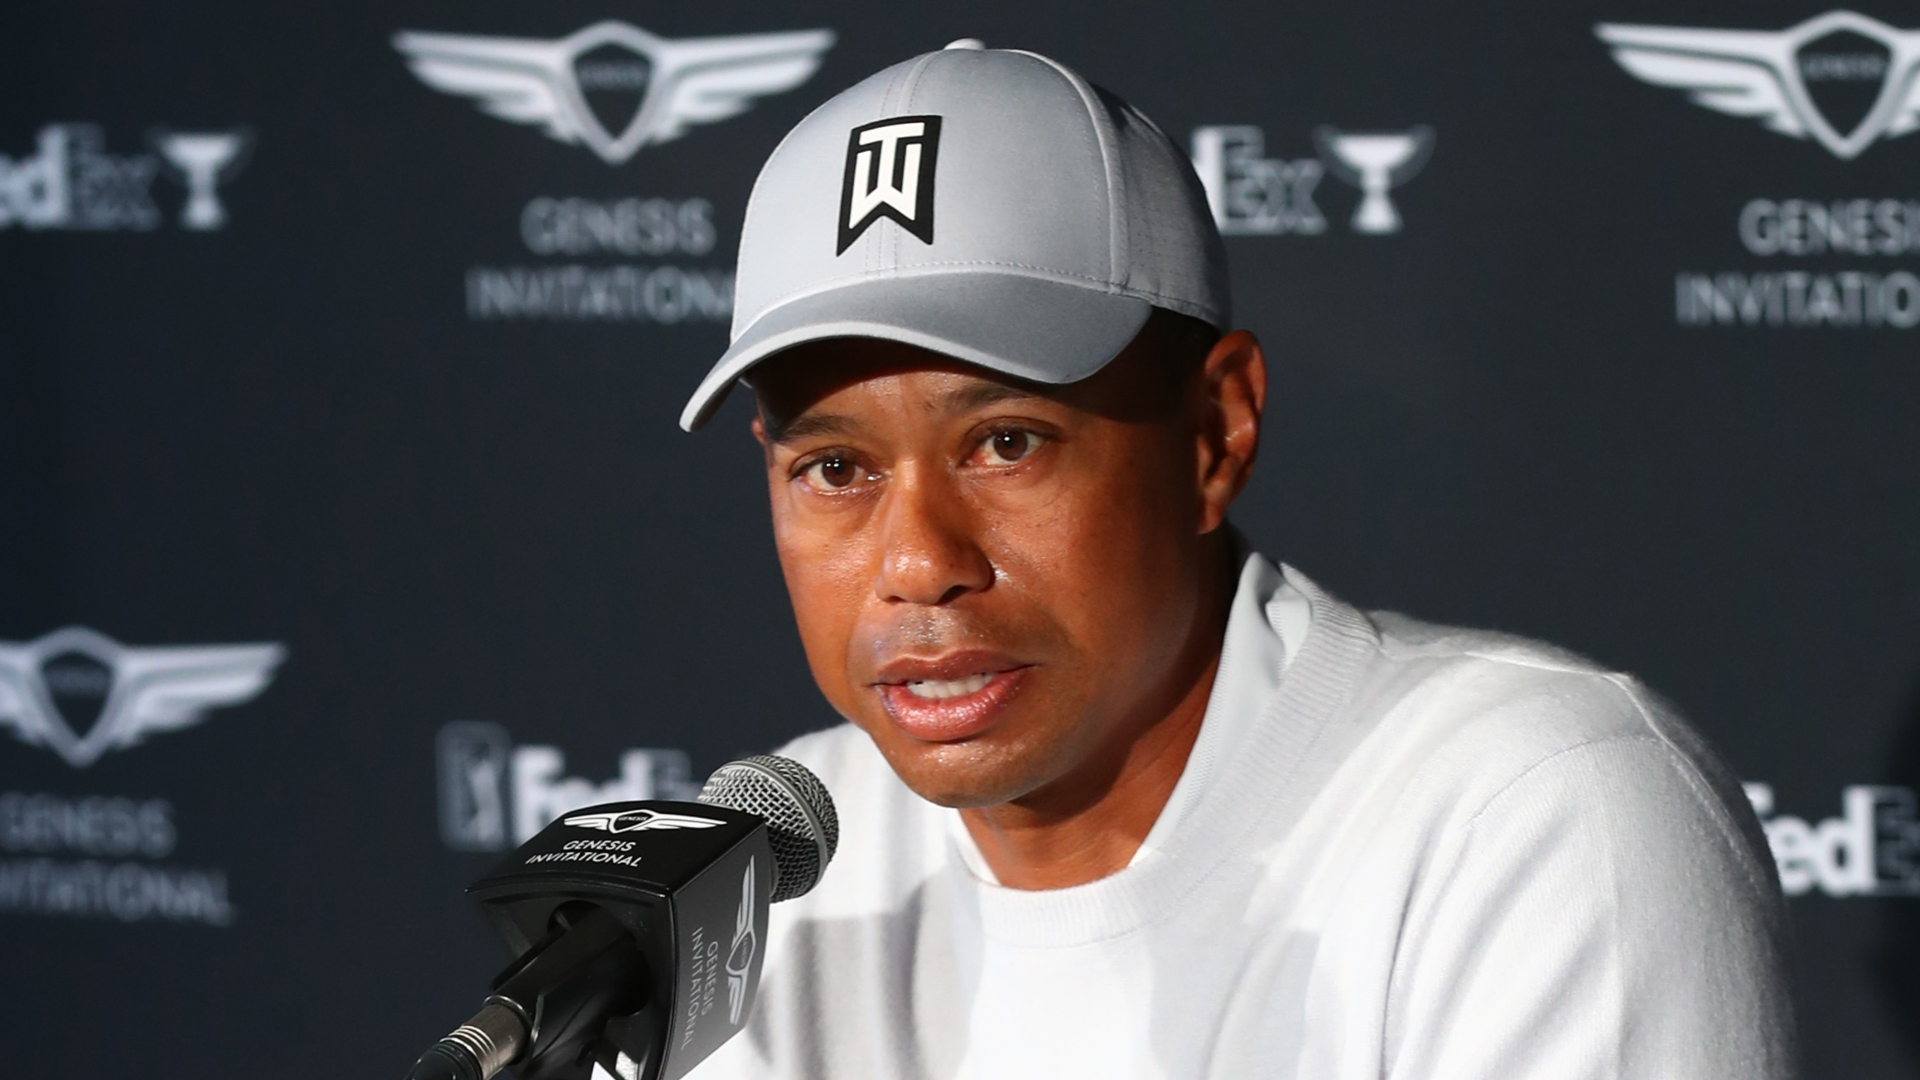 Tiger Woods calls for 'safer, unified society' after George Floyd's death